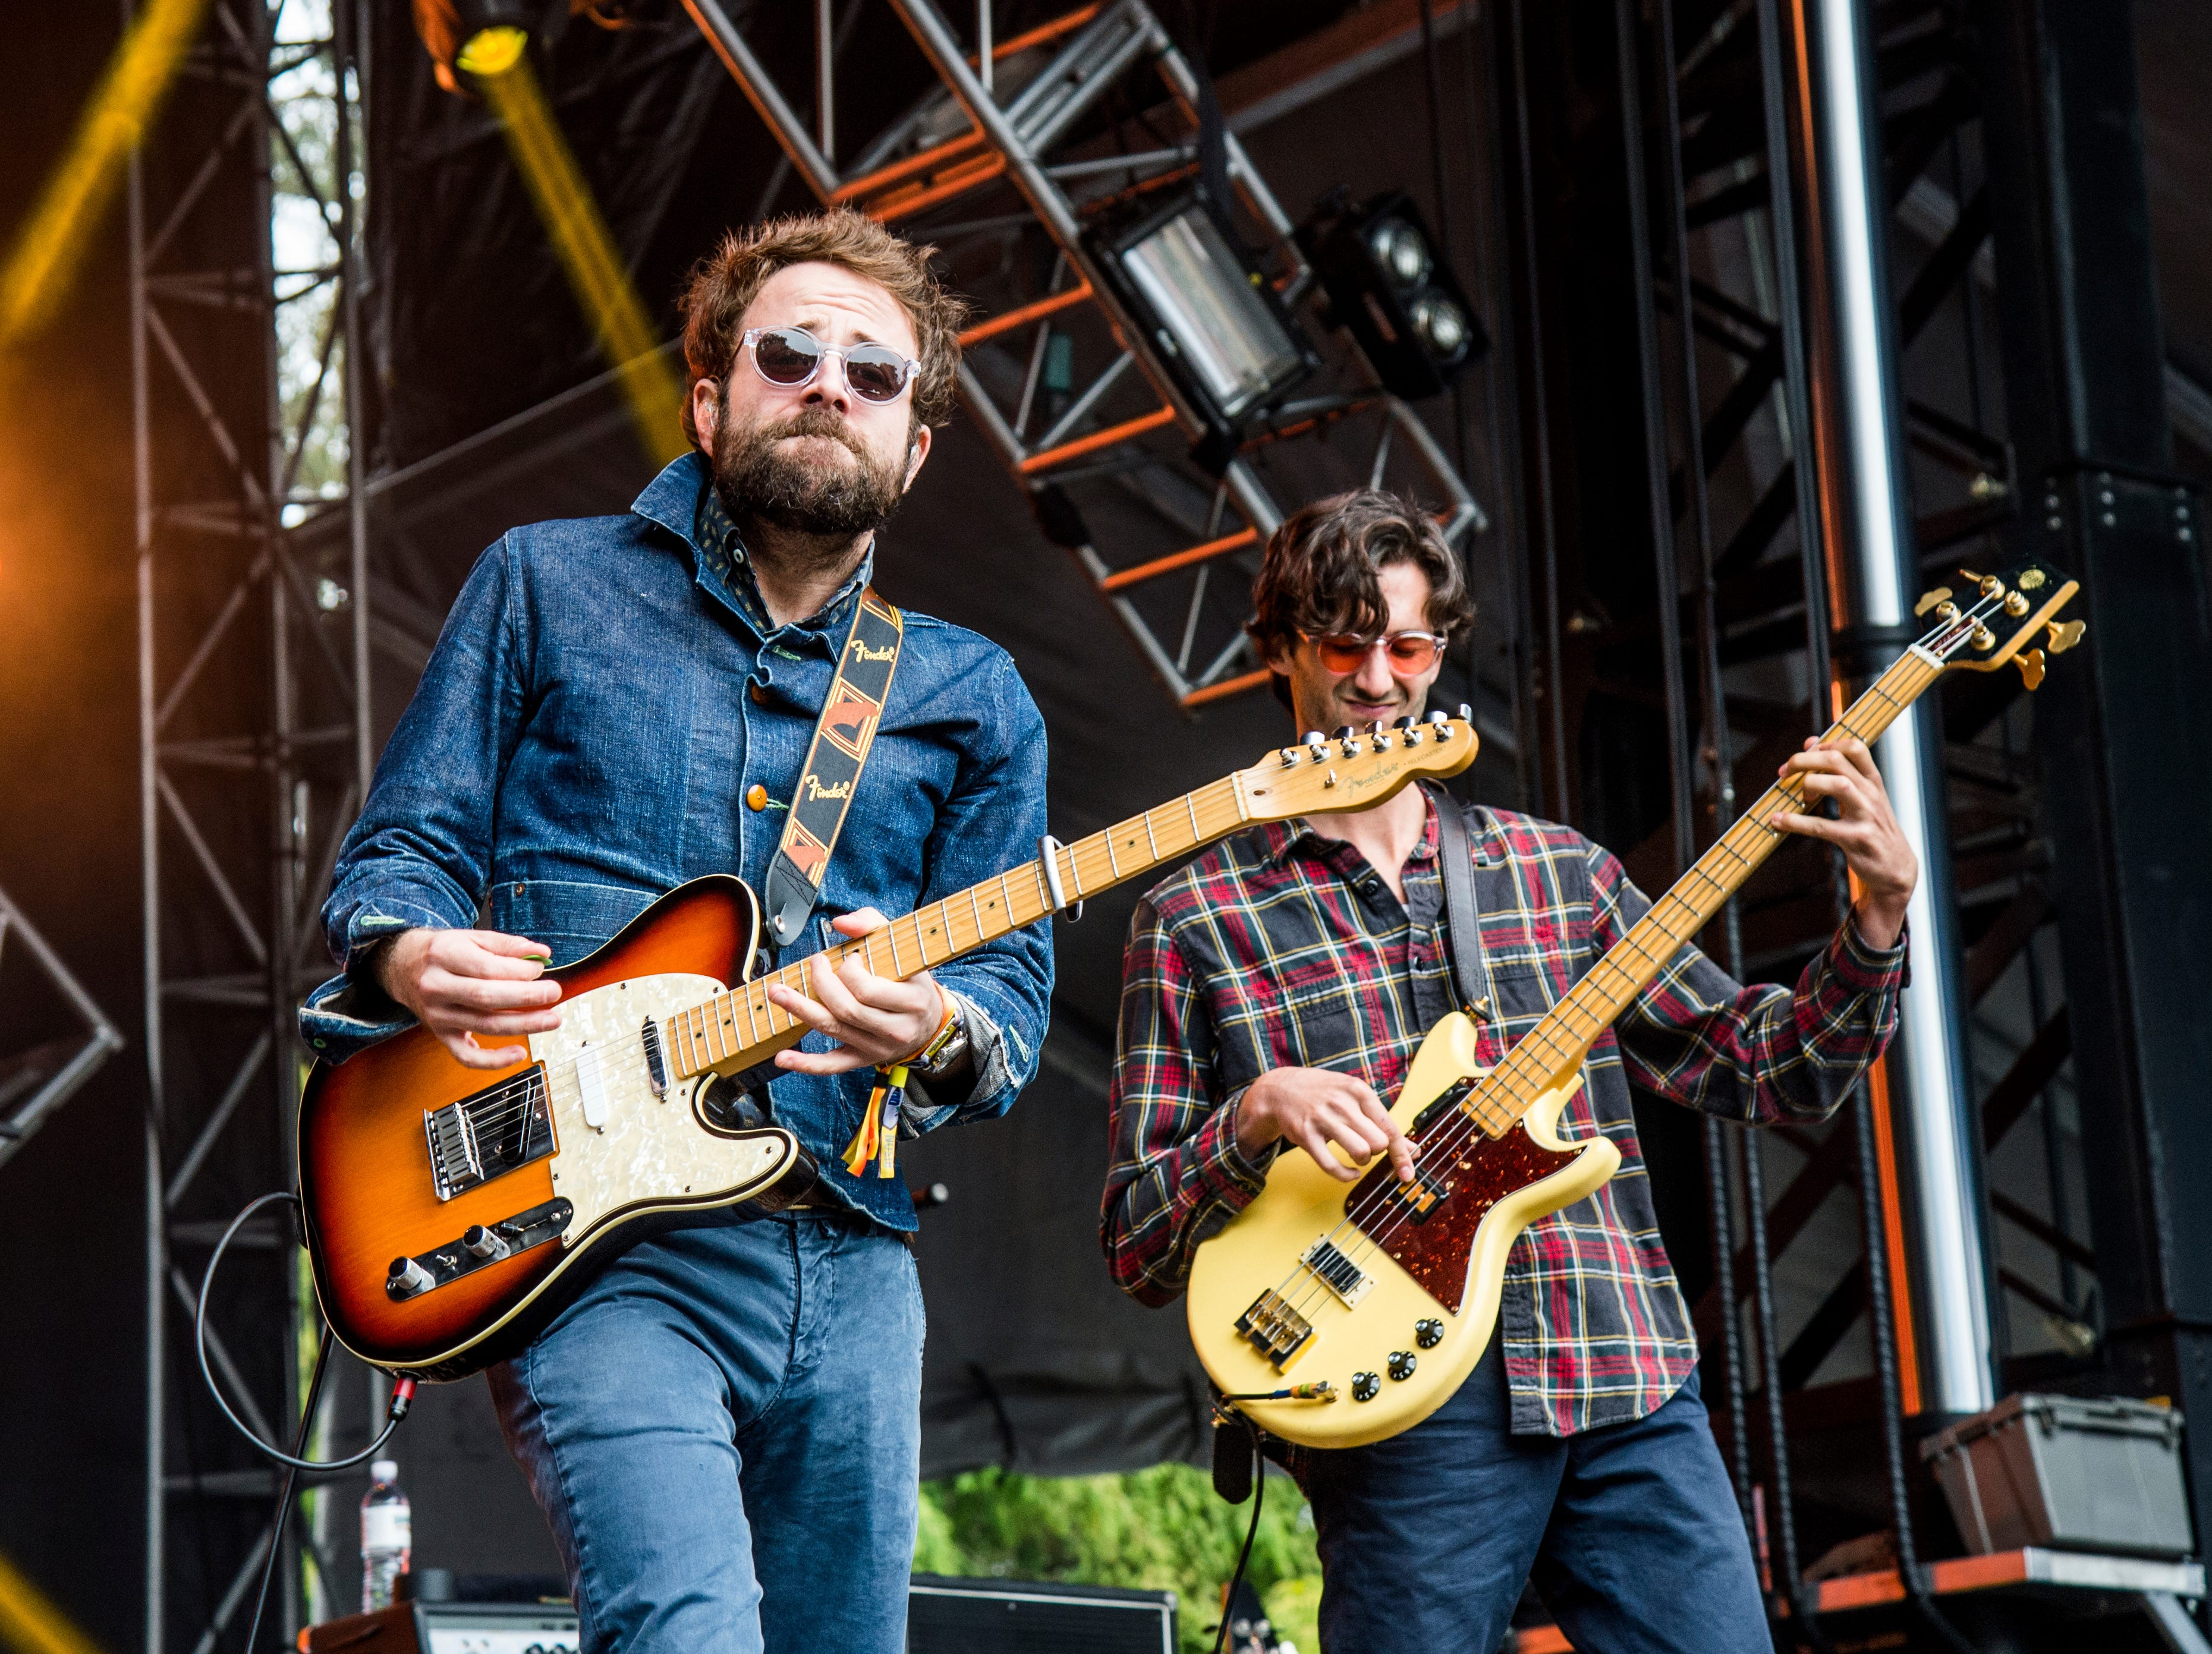 Taylor Goldsmith, left, and Wylie Gelber of Dawes performs at the 2017 Outside Lands Music Festival at Golden Gate Park on Saturday, Aug. 12, 2017, in San Francisco, Calif.(Photo by Amy Harris/Invision/AP)